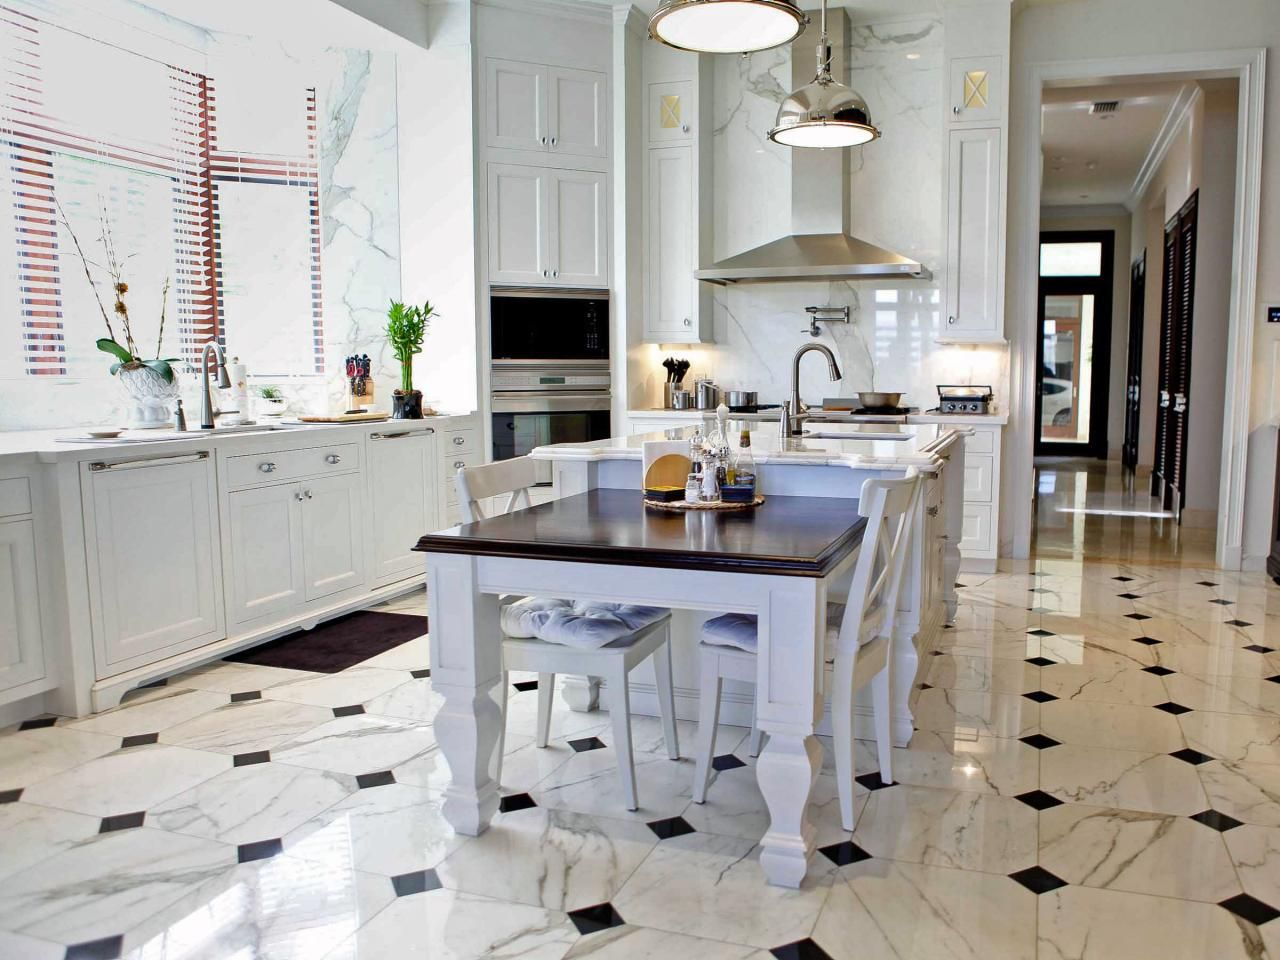 What You Should Know About Marble Flooring Marble Floor Kitchen Kitchen Flooring White Tile Kitchen Floor